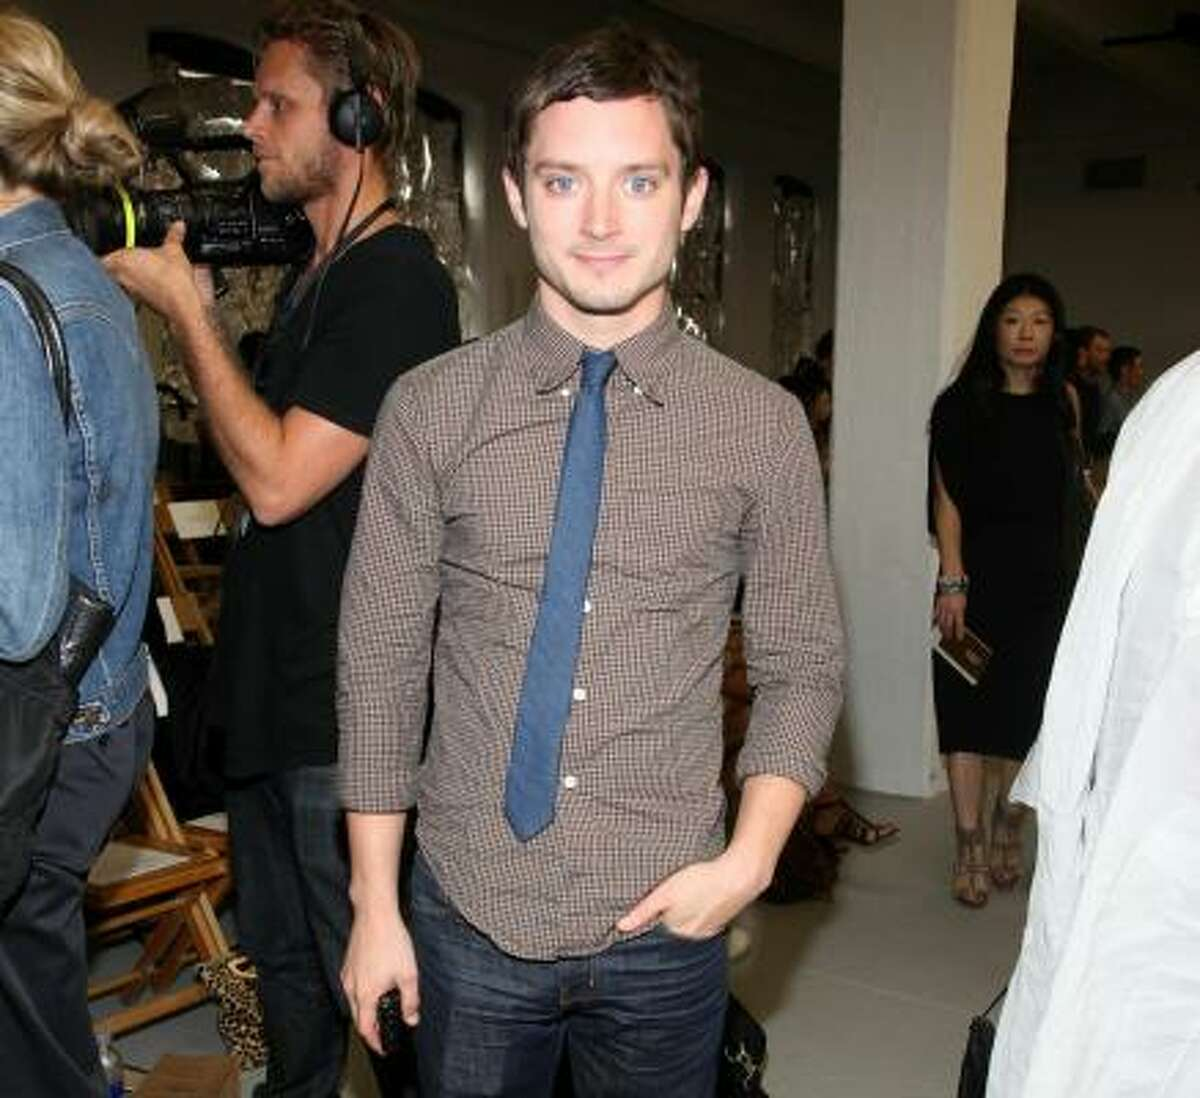 Actor Elijah Wood definitely looks more chic than hobbit behind the stage of the Rodarte show.